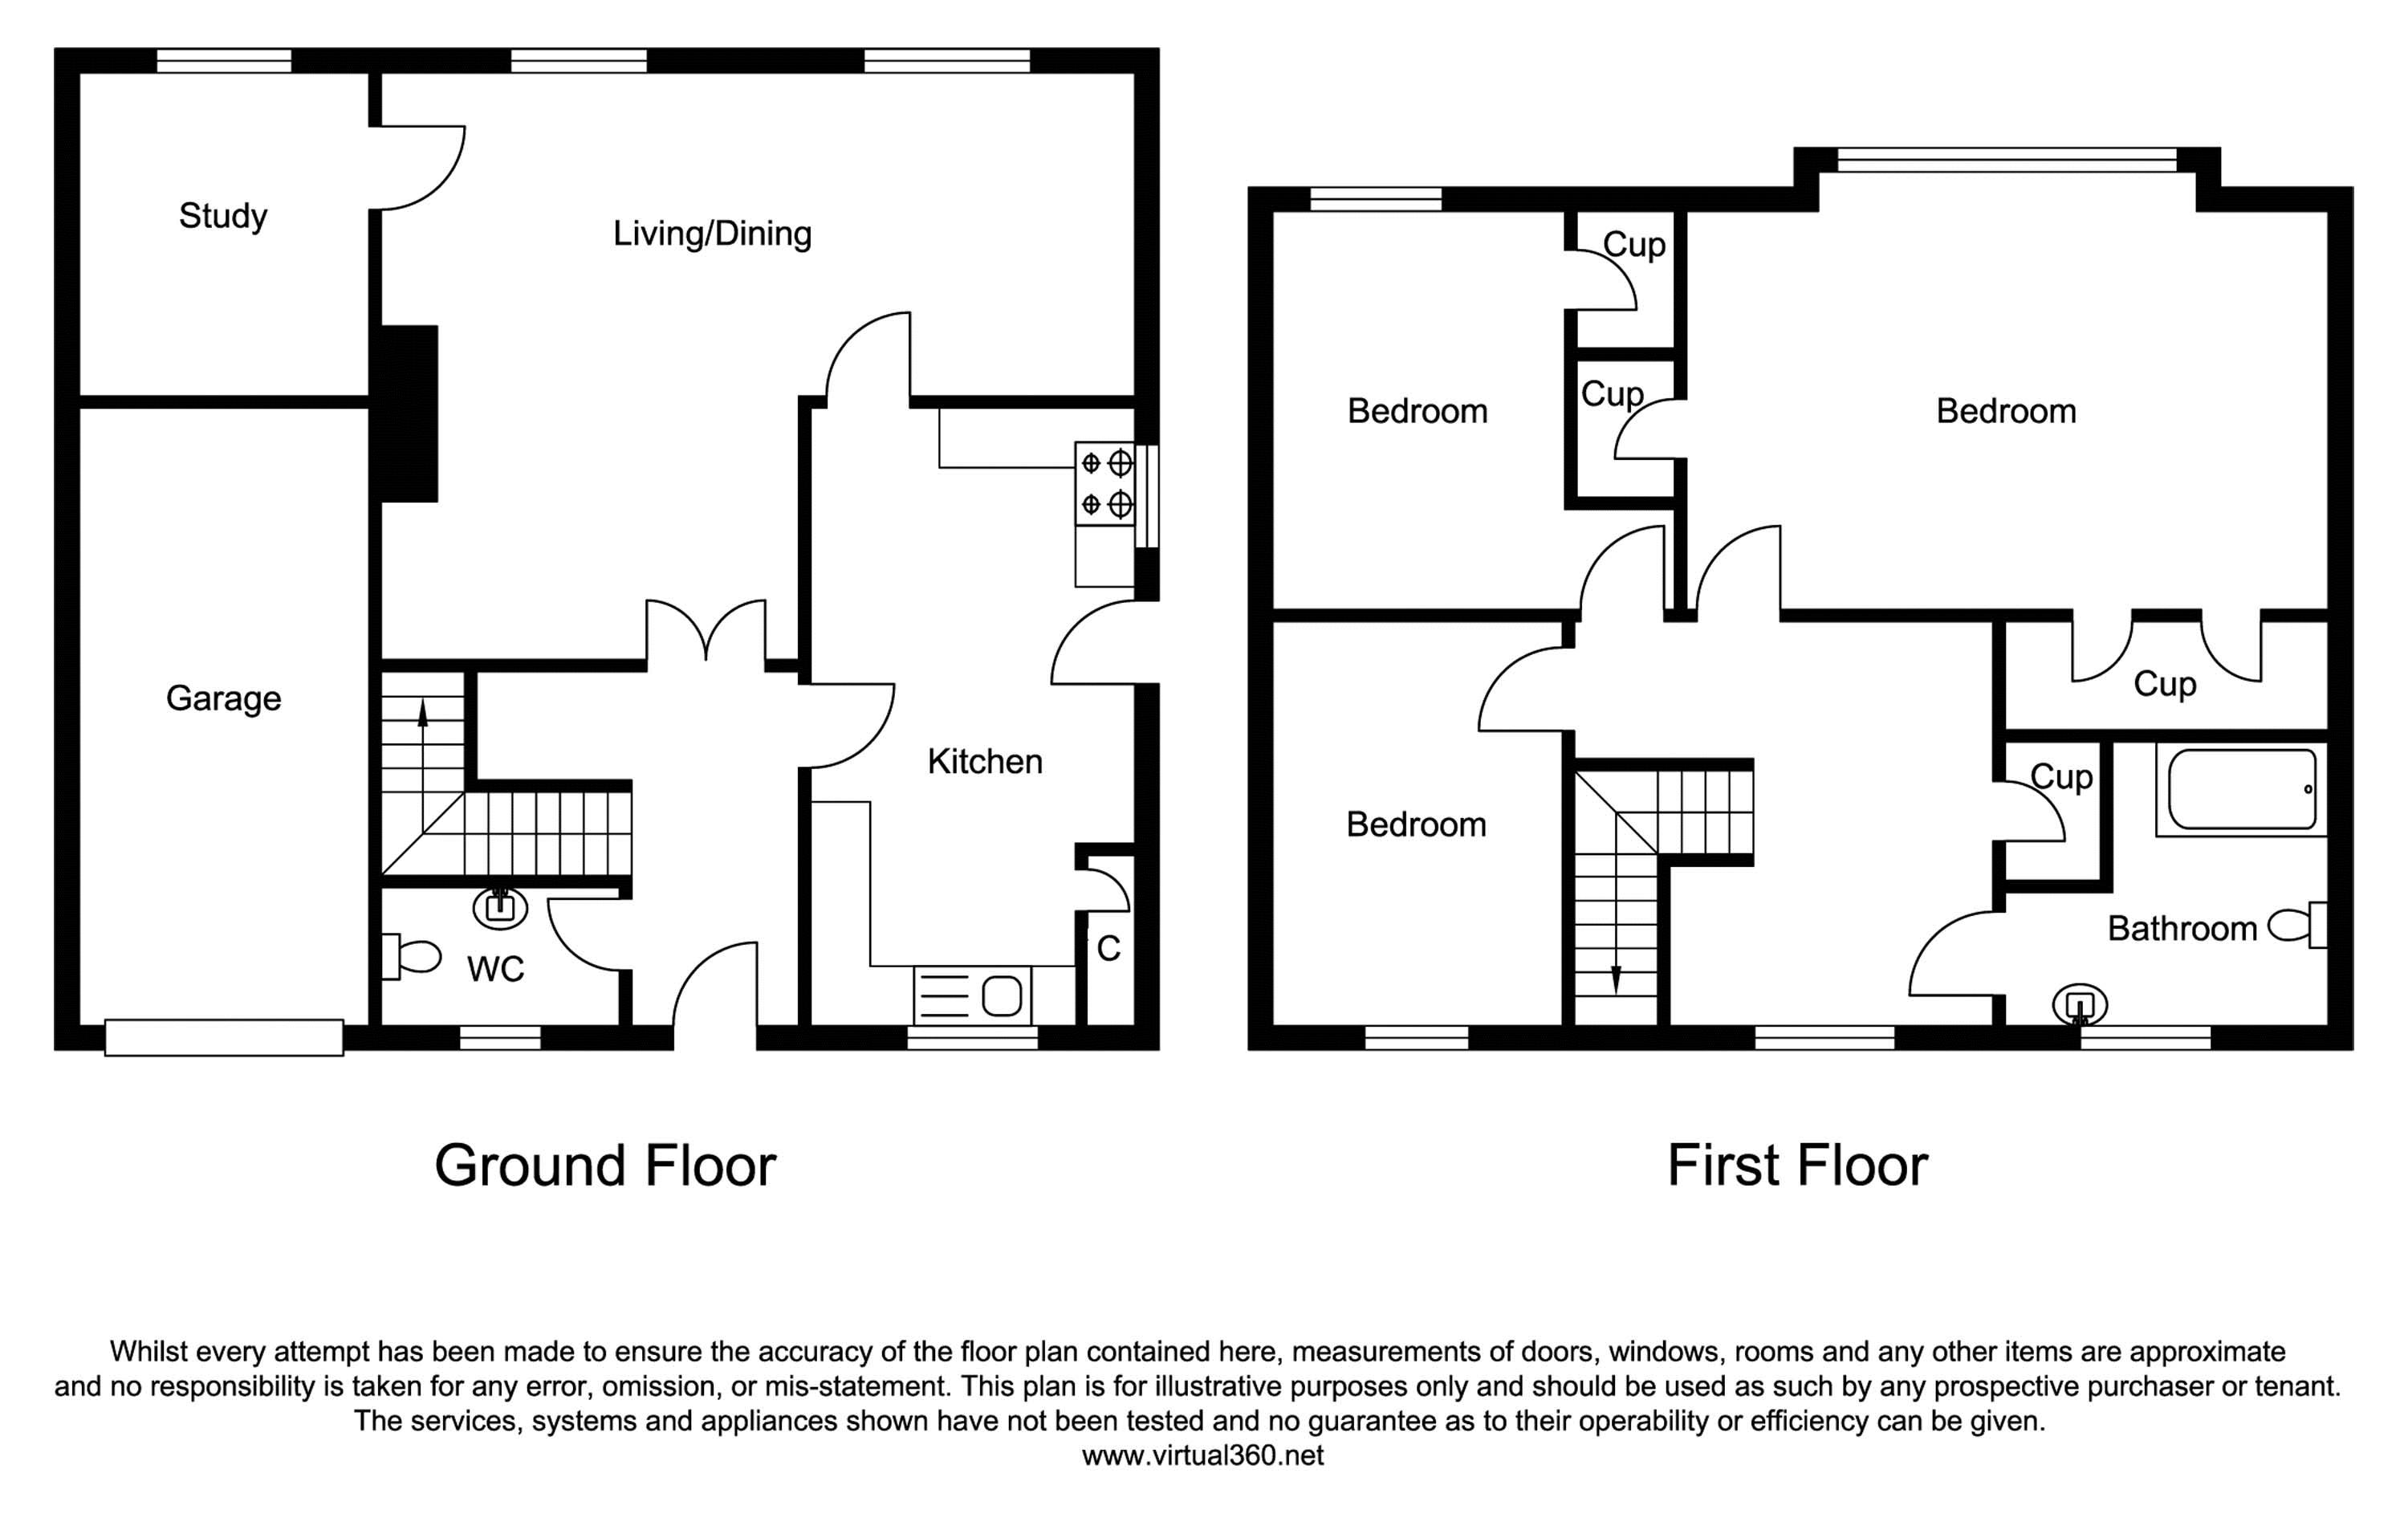 Hook End, Brentwood floor plan